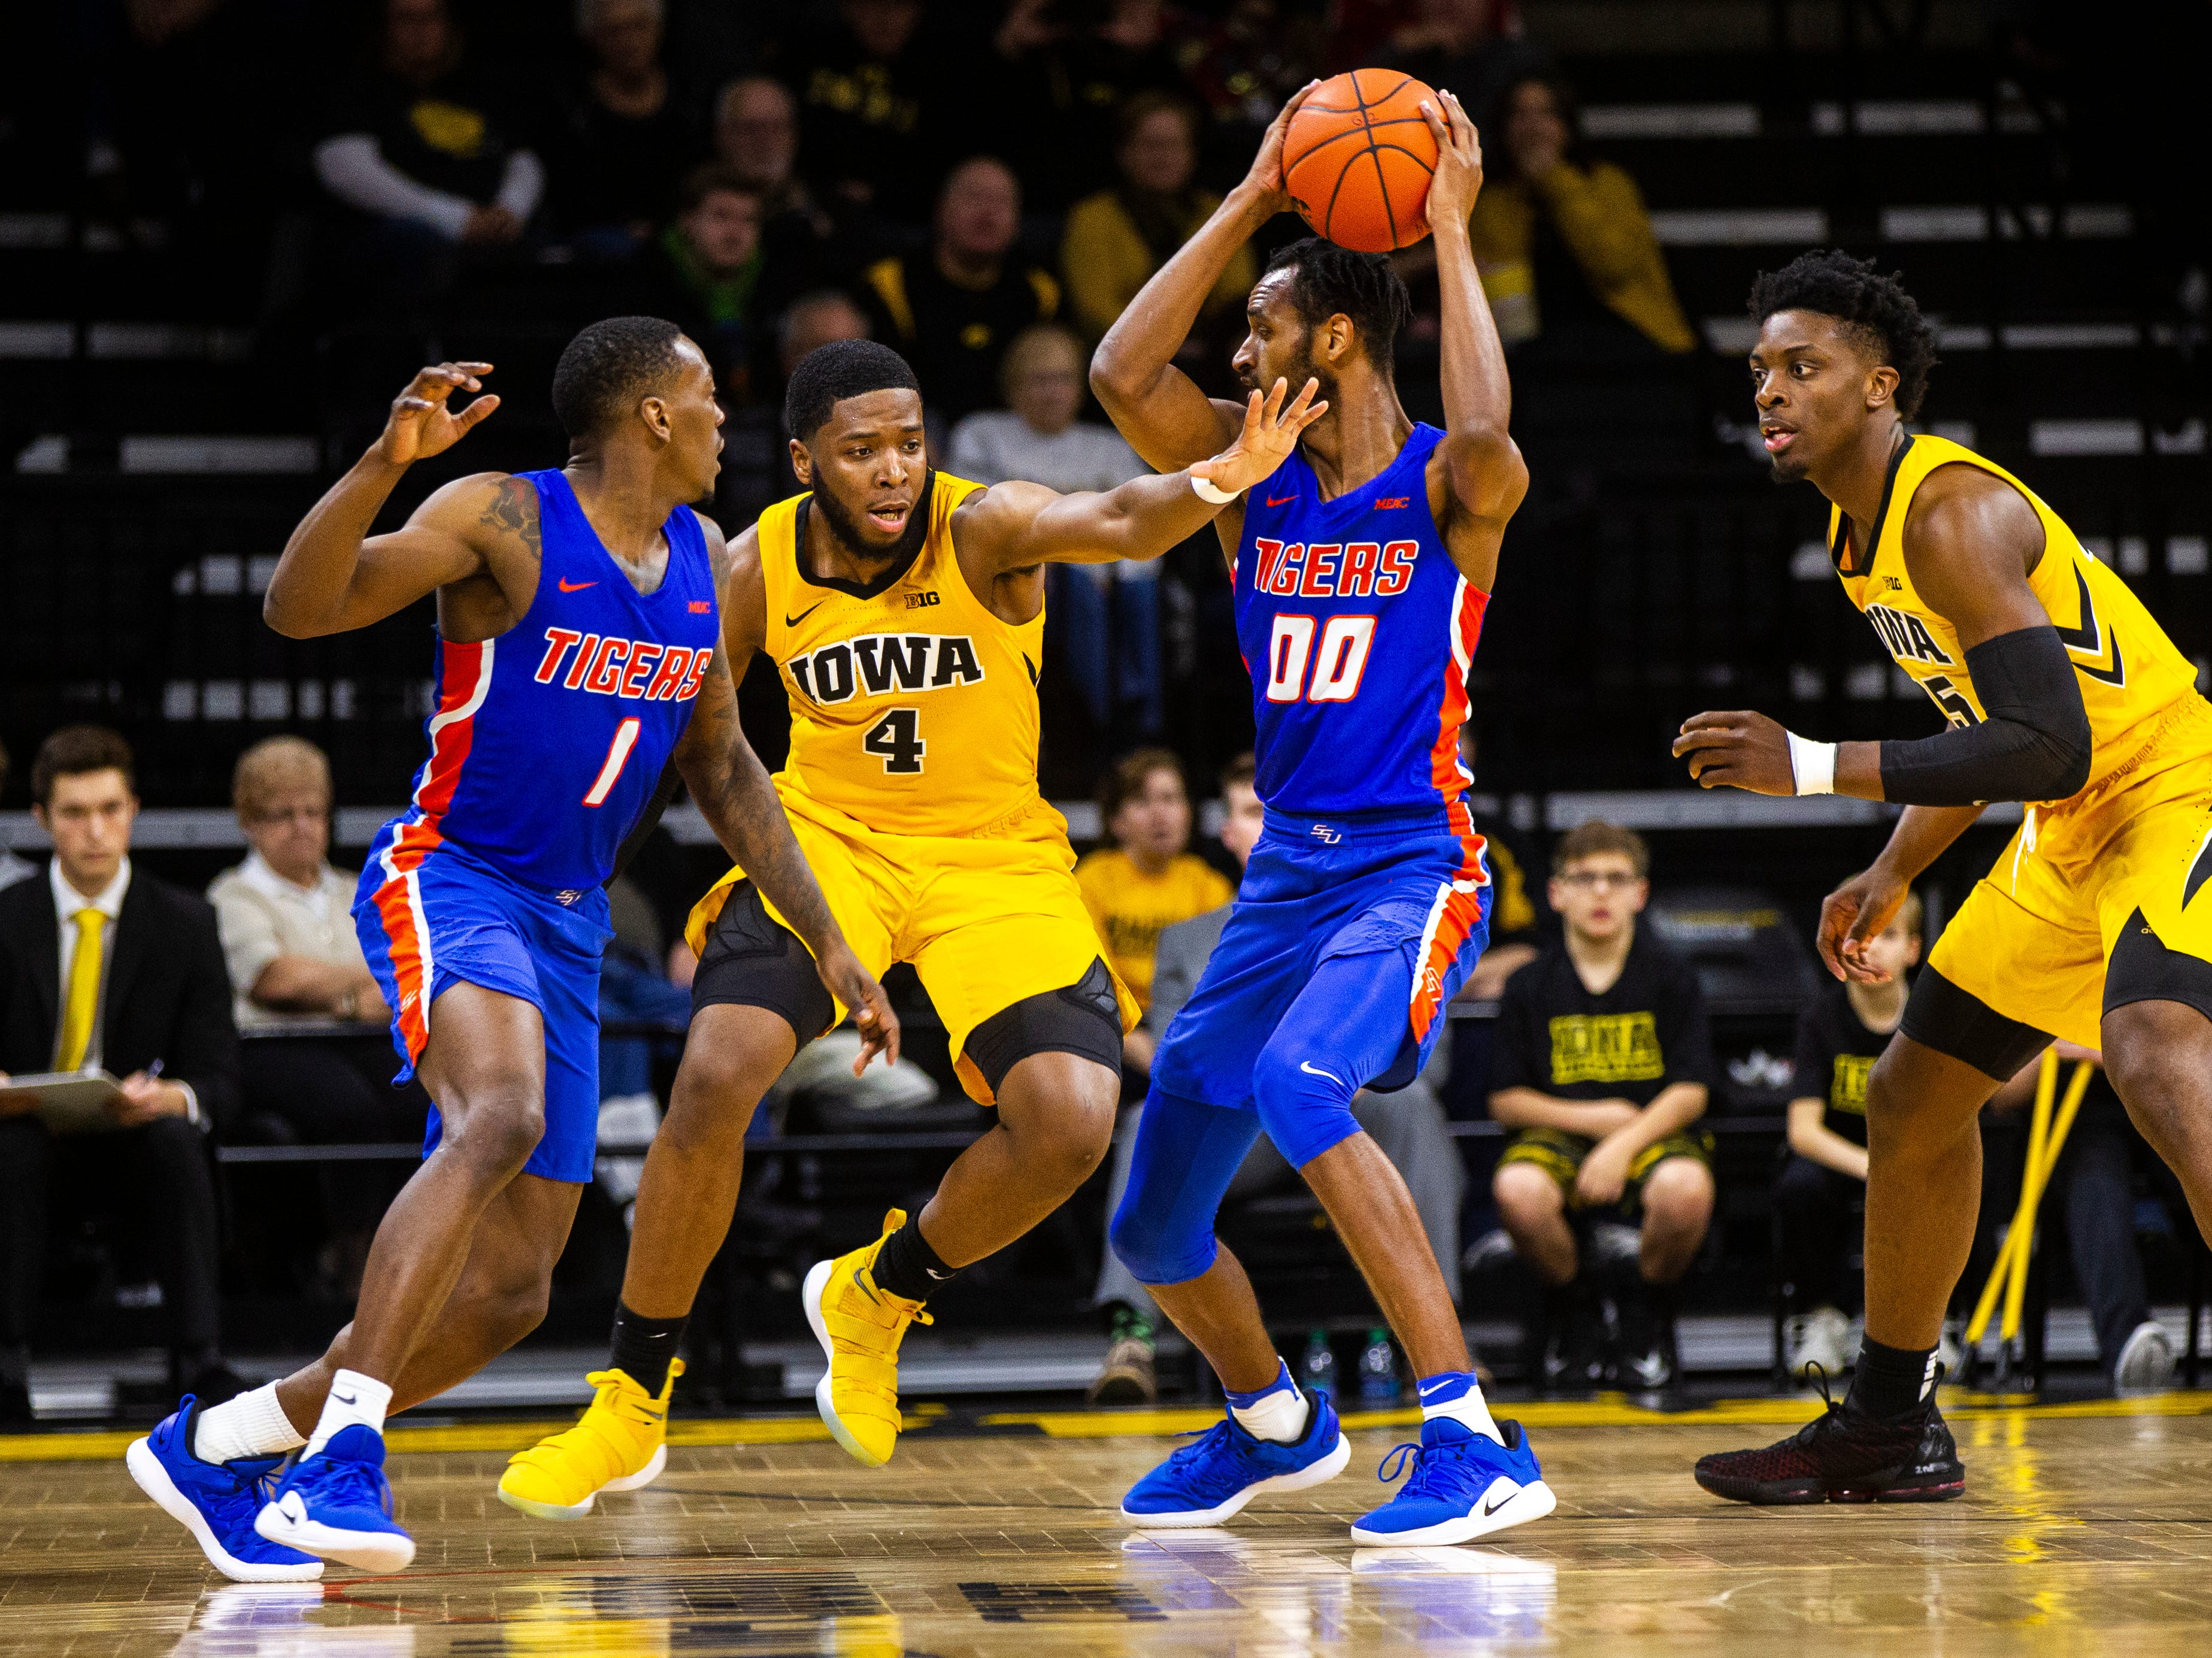 Iowa guard Isaiah Moss (4) defends Savannah State forward Tyrell Harper (00) during a NCAA men's basketball game on Saturday, Dec. 22, 2018, at Carver-Hawkeye Arena in Iowa City.